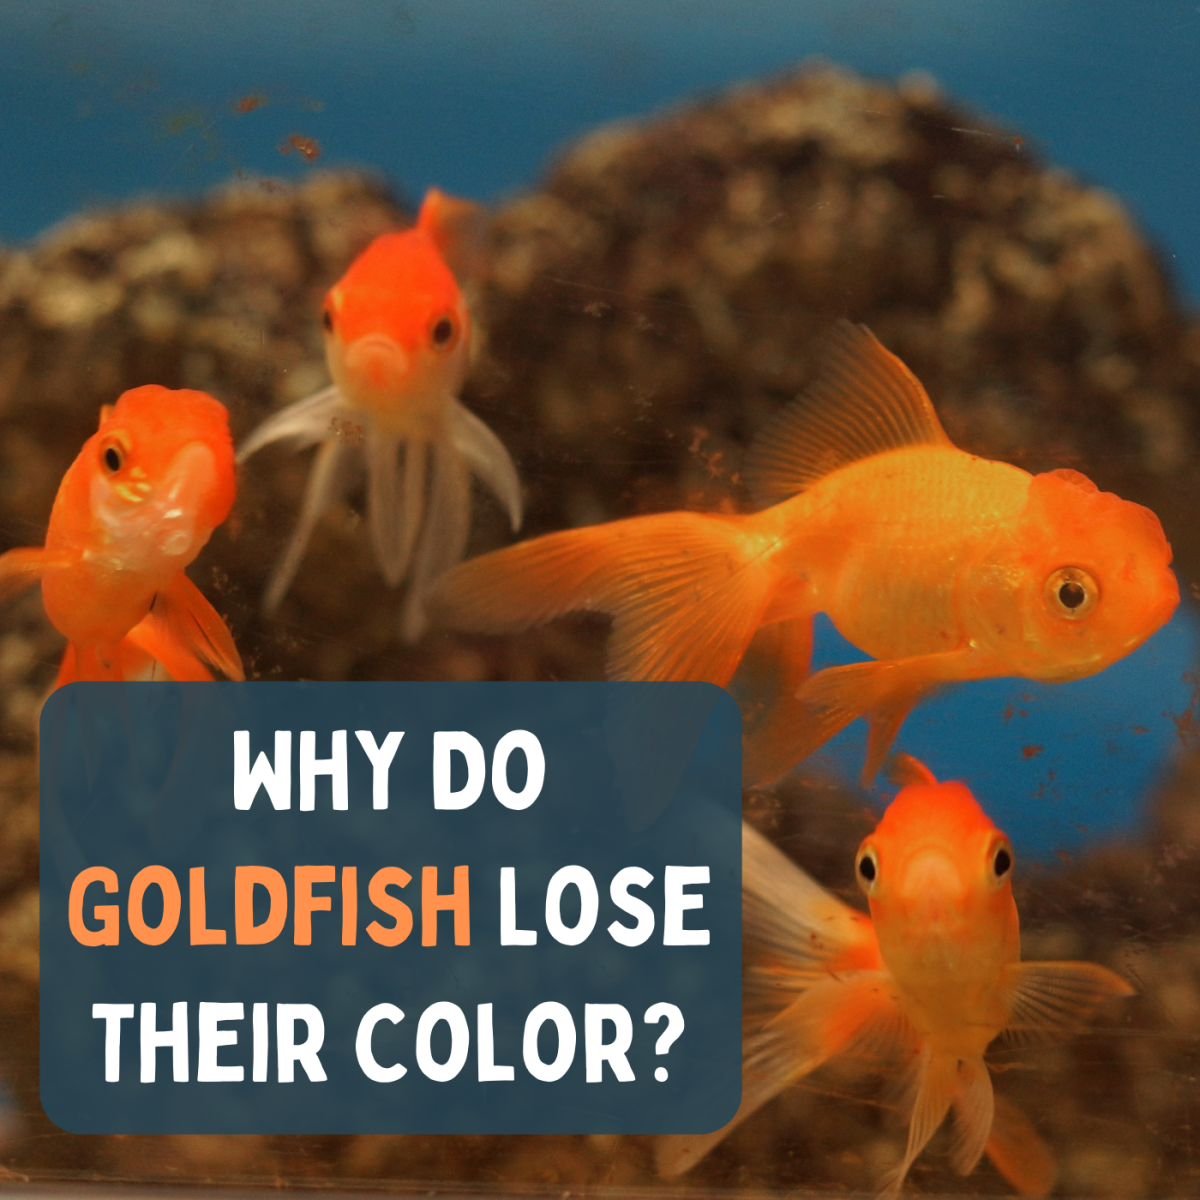 If you bought your goldfish for its color, you may be disappointed.